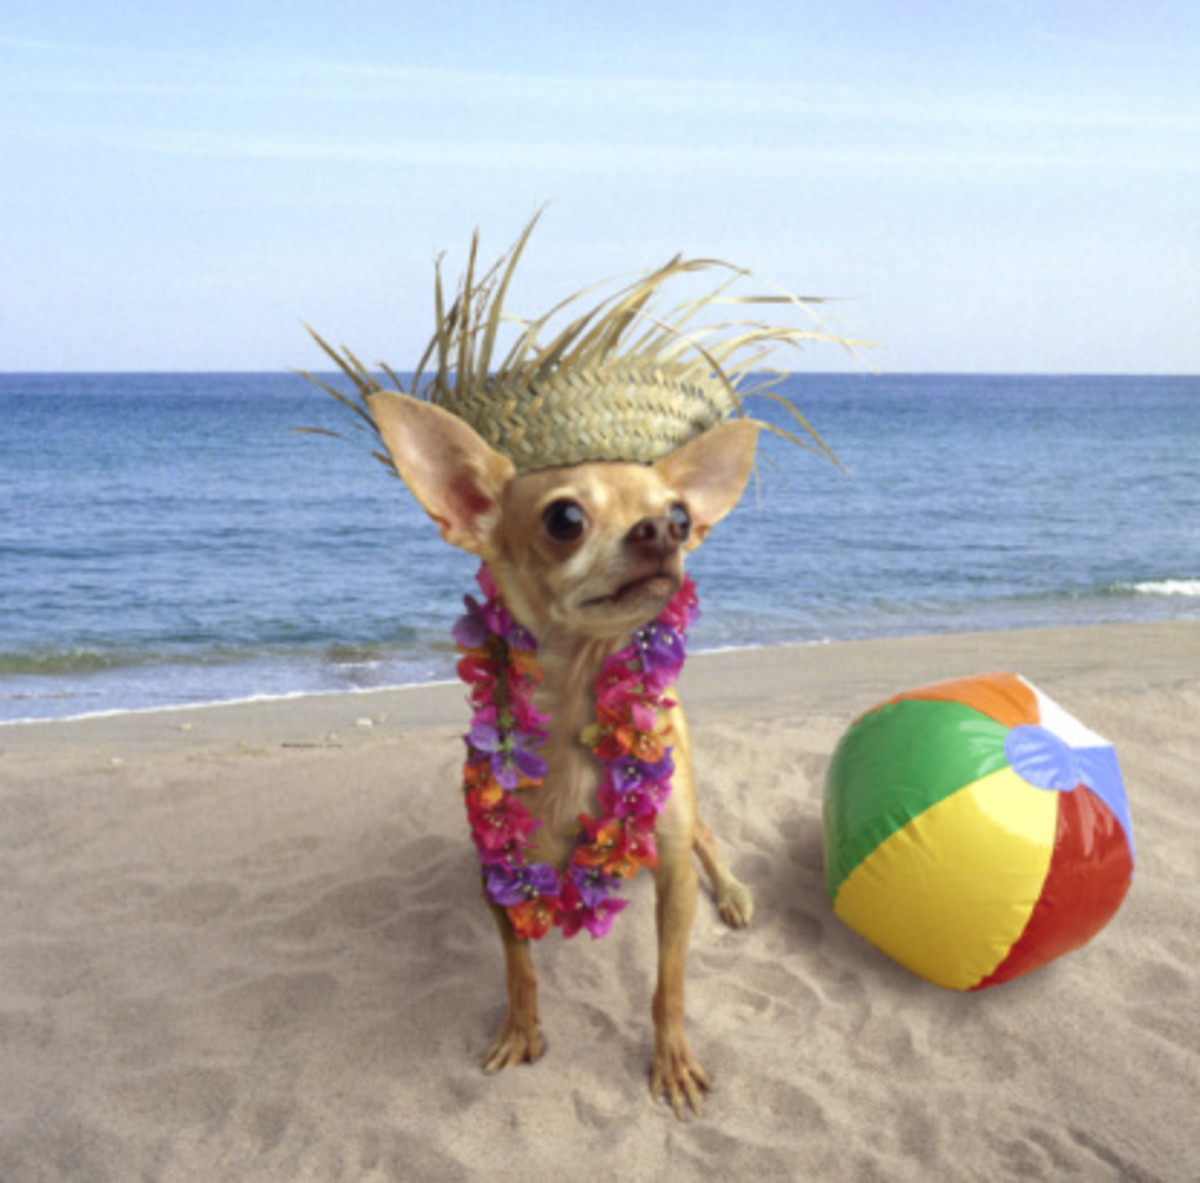 You can have fun dressing up your Chihuahua, but make sure comfort and protection are your number one priority.  Especially when they are outside where their skin can be exposed to harsh UV rays.